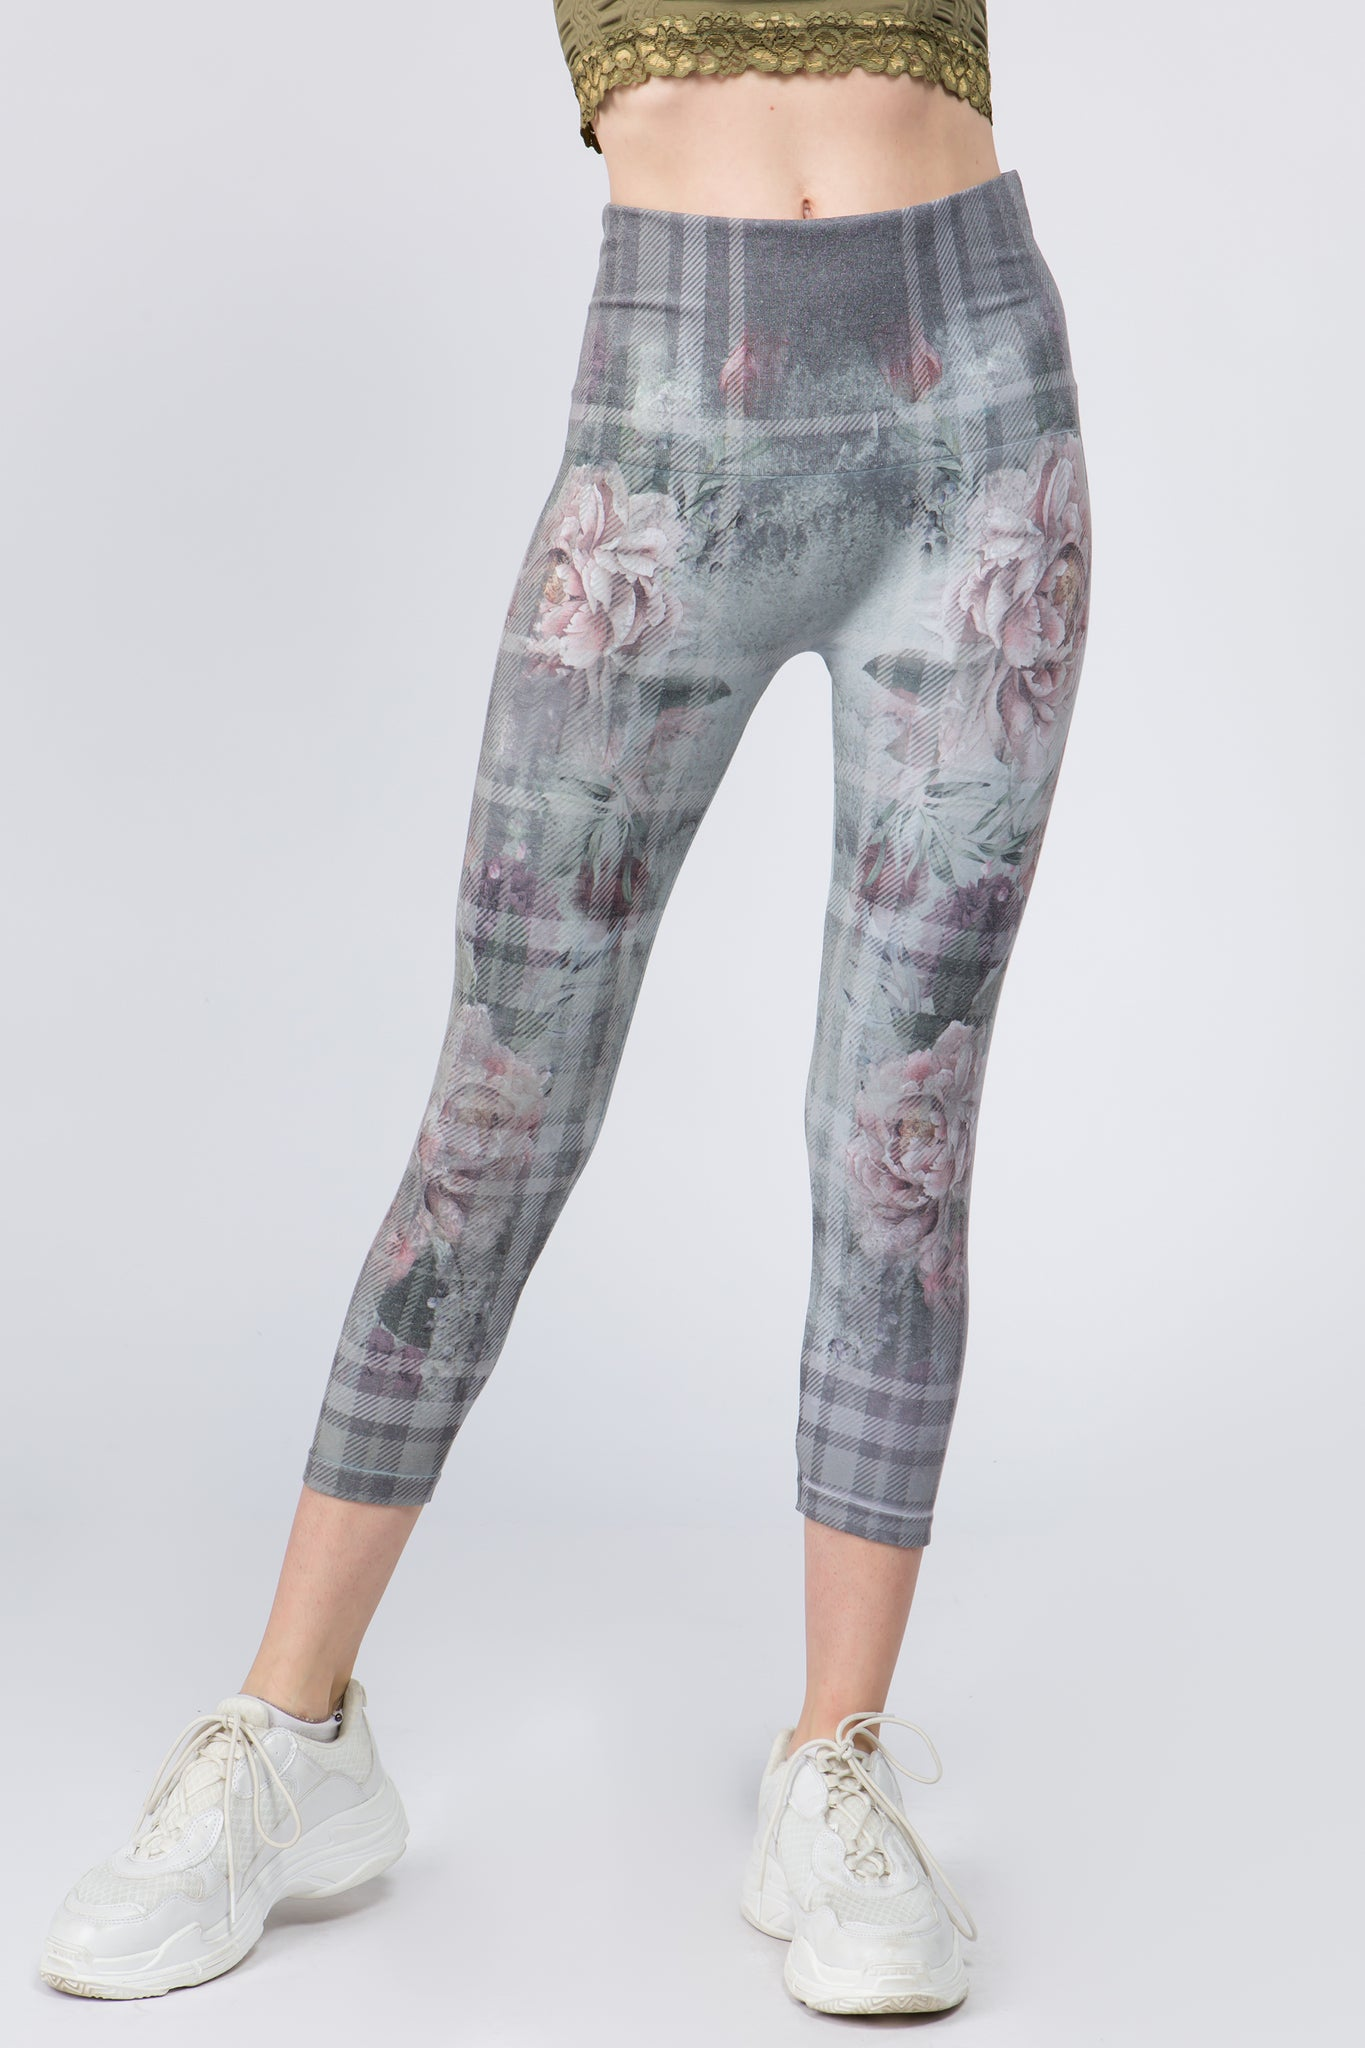 Cropped Floral Bliss Leggings